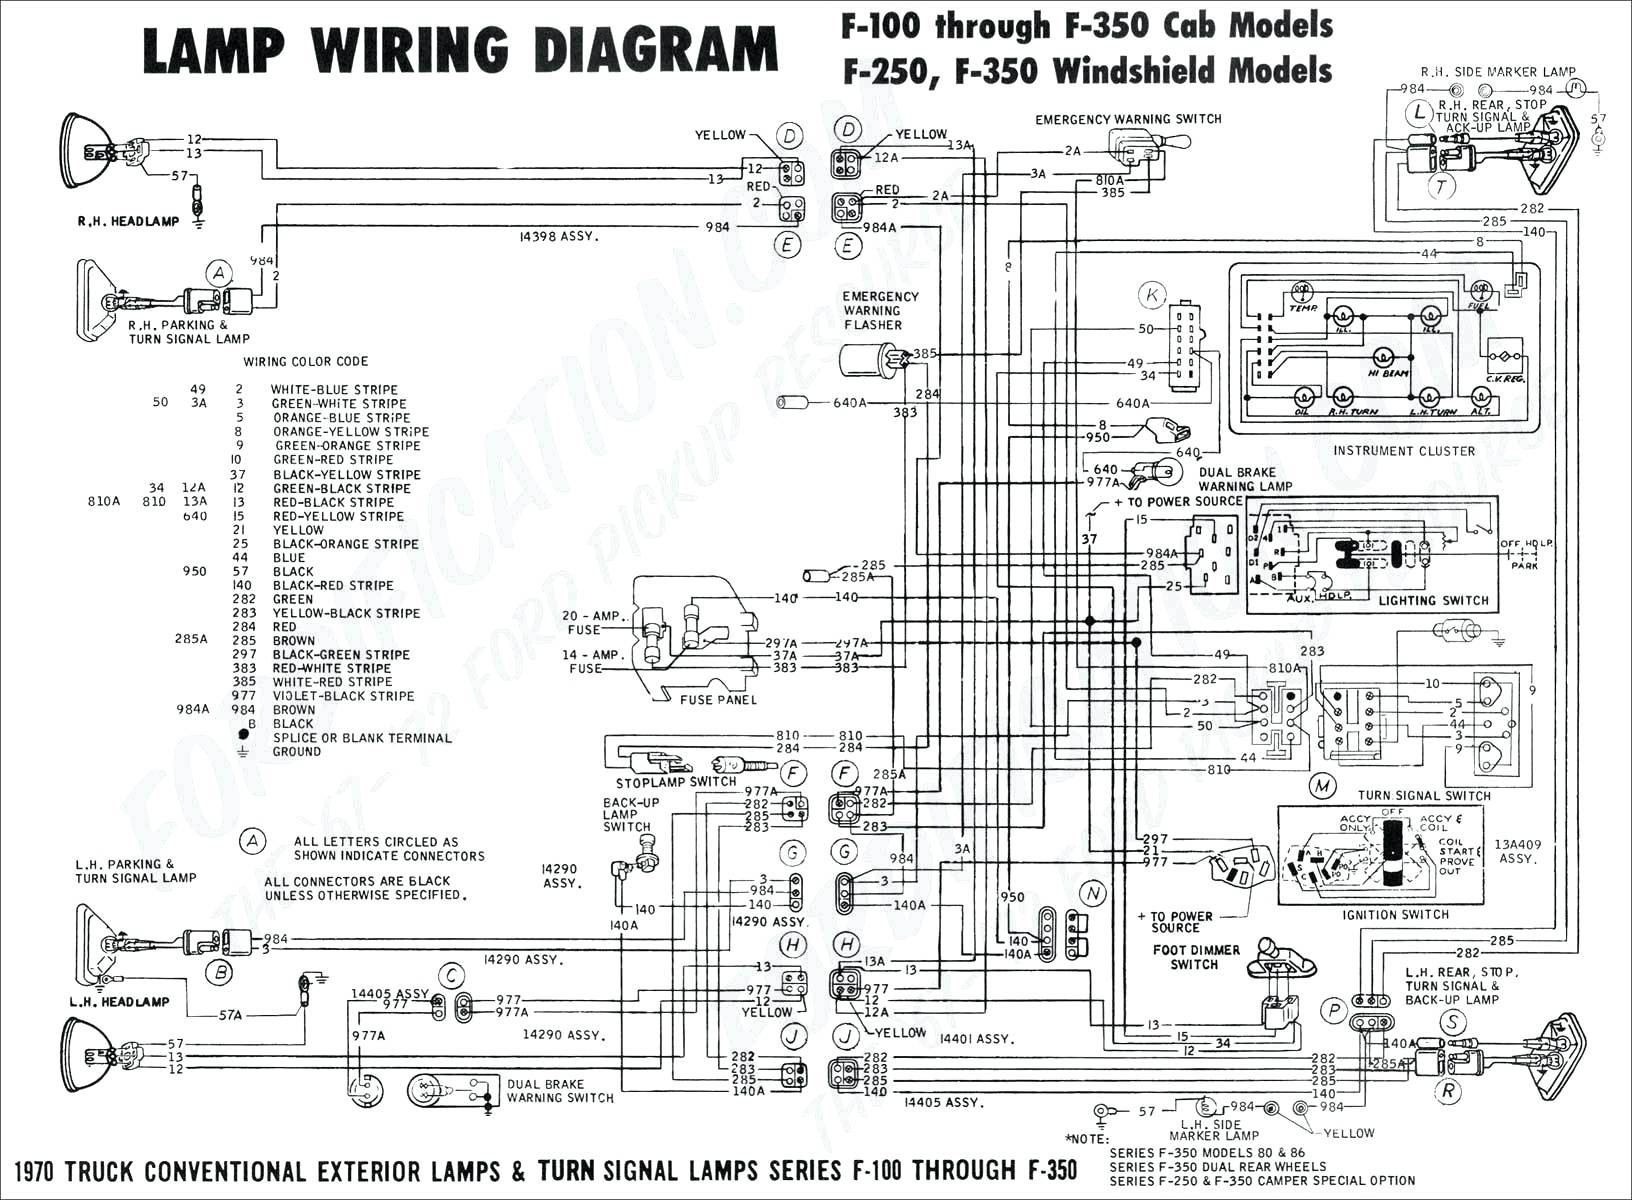 chevy silverado tail light wiring diagram Collection-2005 Chevy Silverado Tail Light Wiring Diagram Unique Lovely Trailer 9-m